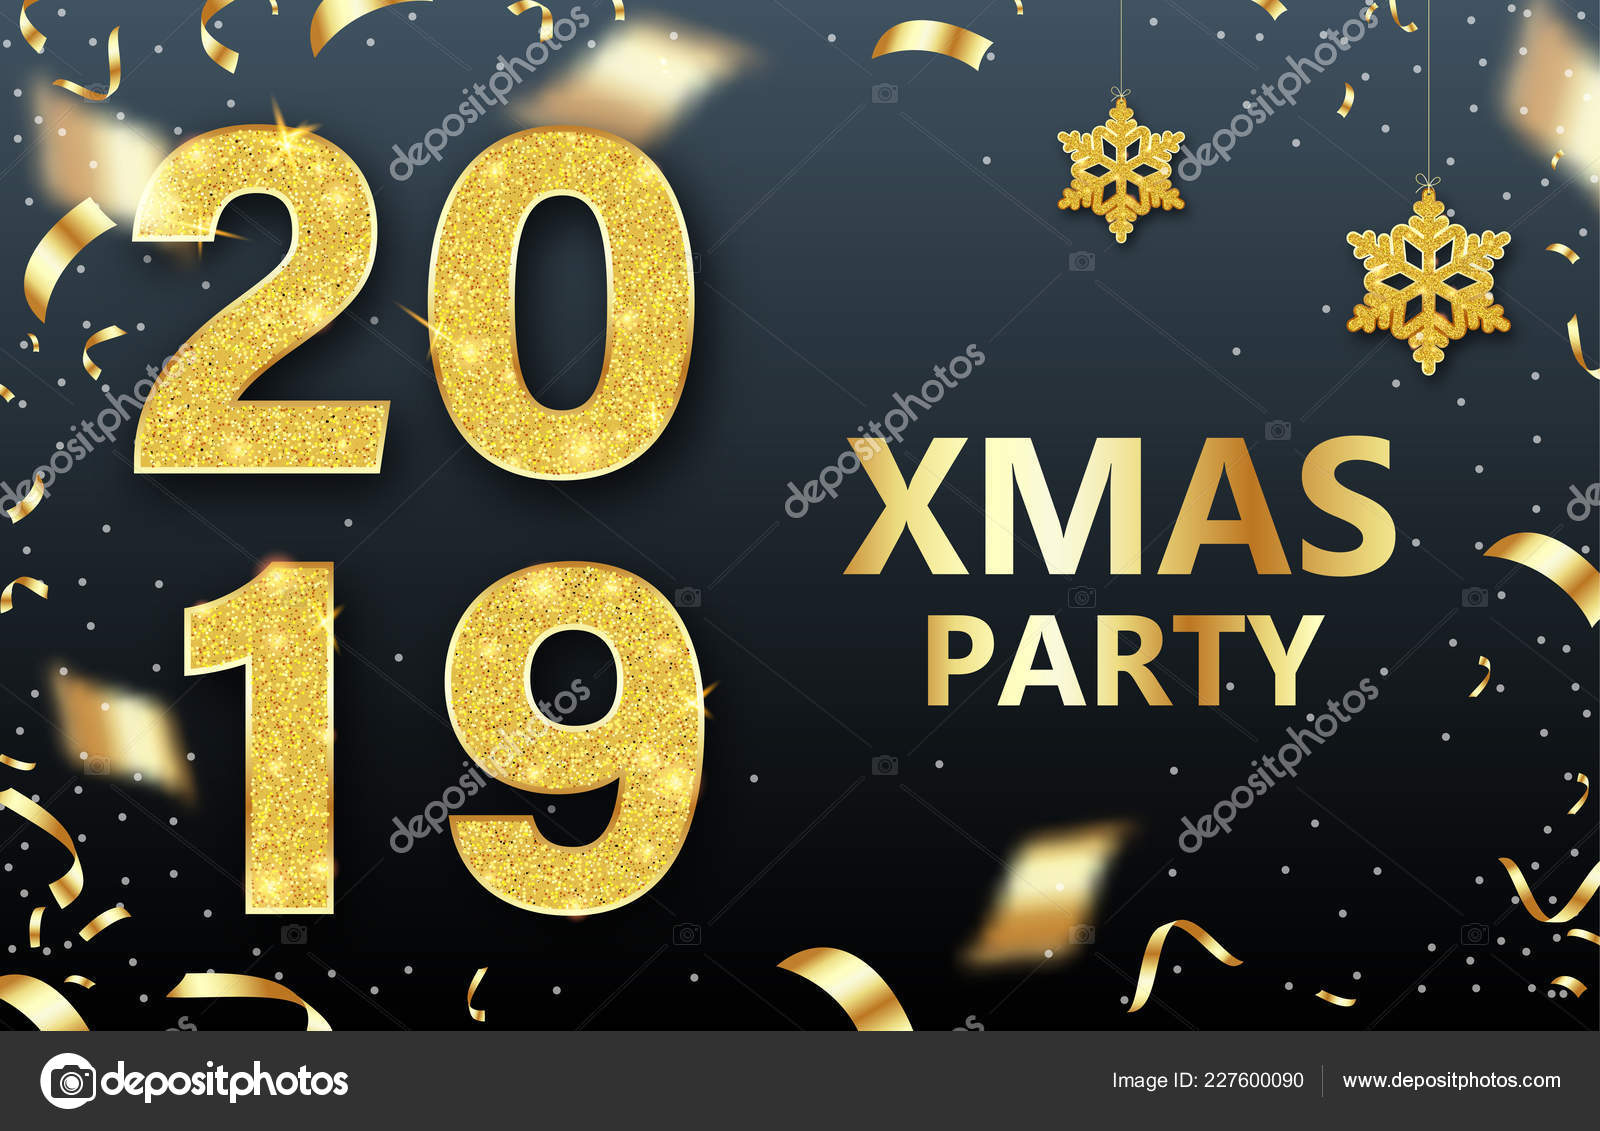 Christmas Party 2019 Logo.Christmas Xmas Party 2019 Shiny Poster With Golden